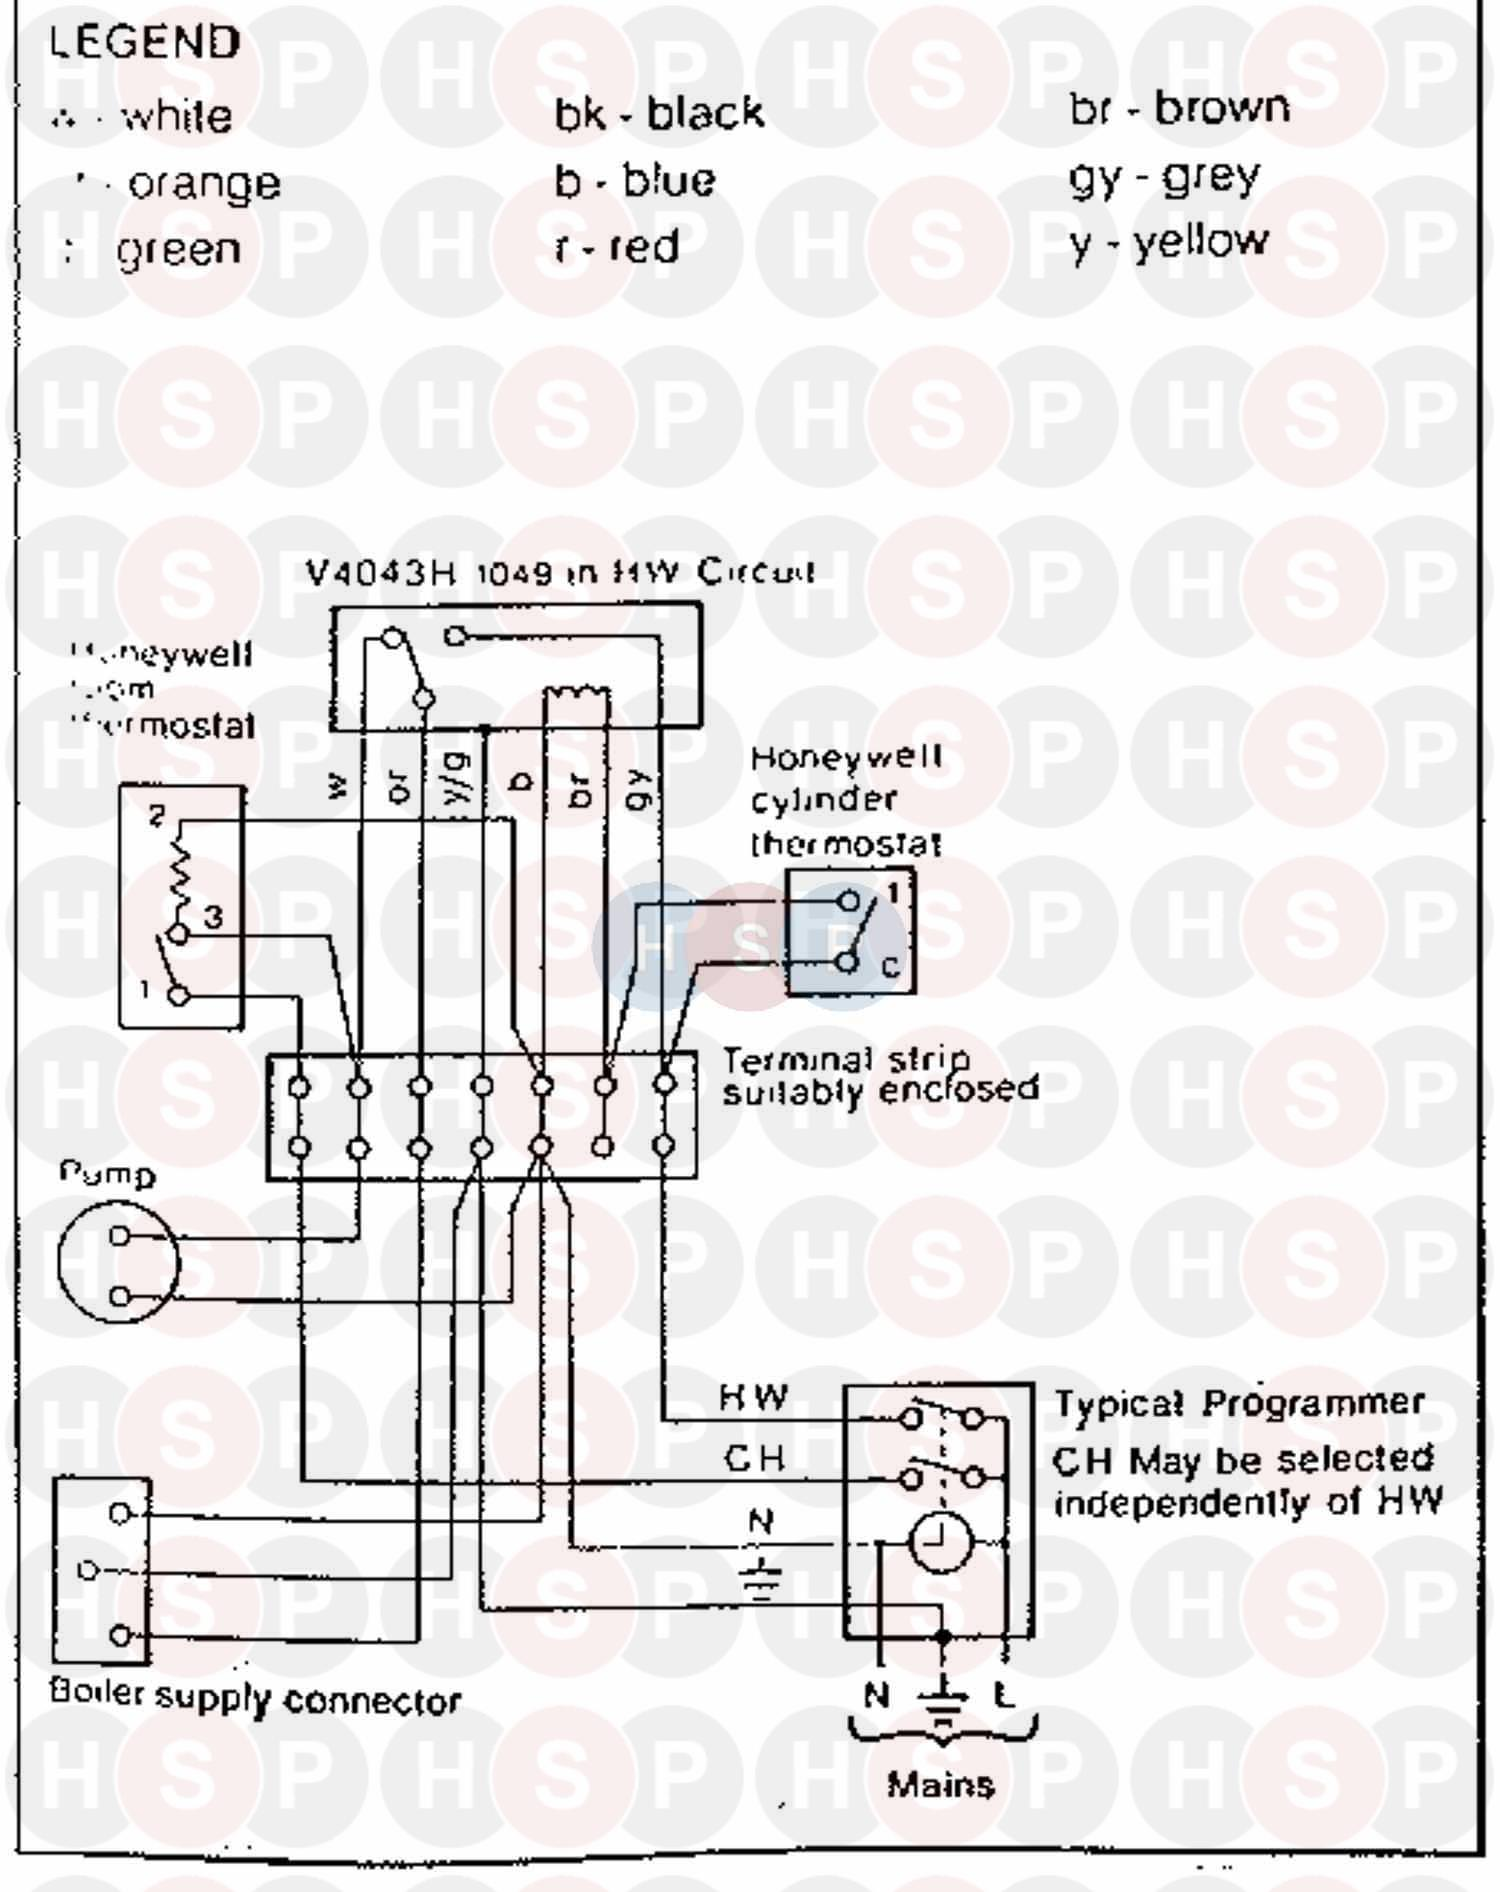 ideal classic rs 40 appliance diagram wiring diagram 4 heating